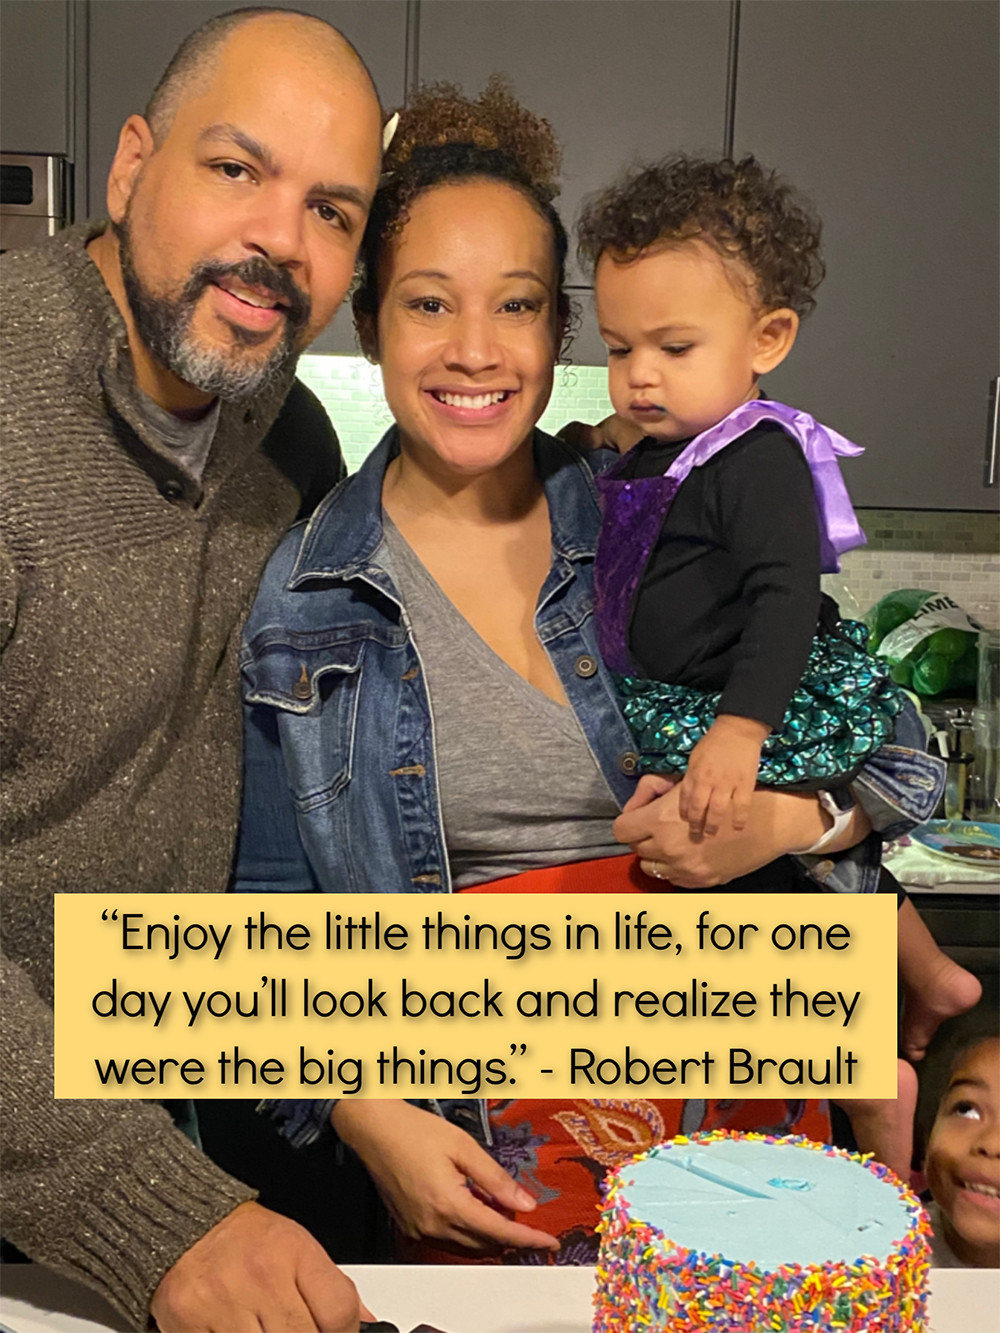 quote about enjoying the little things